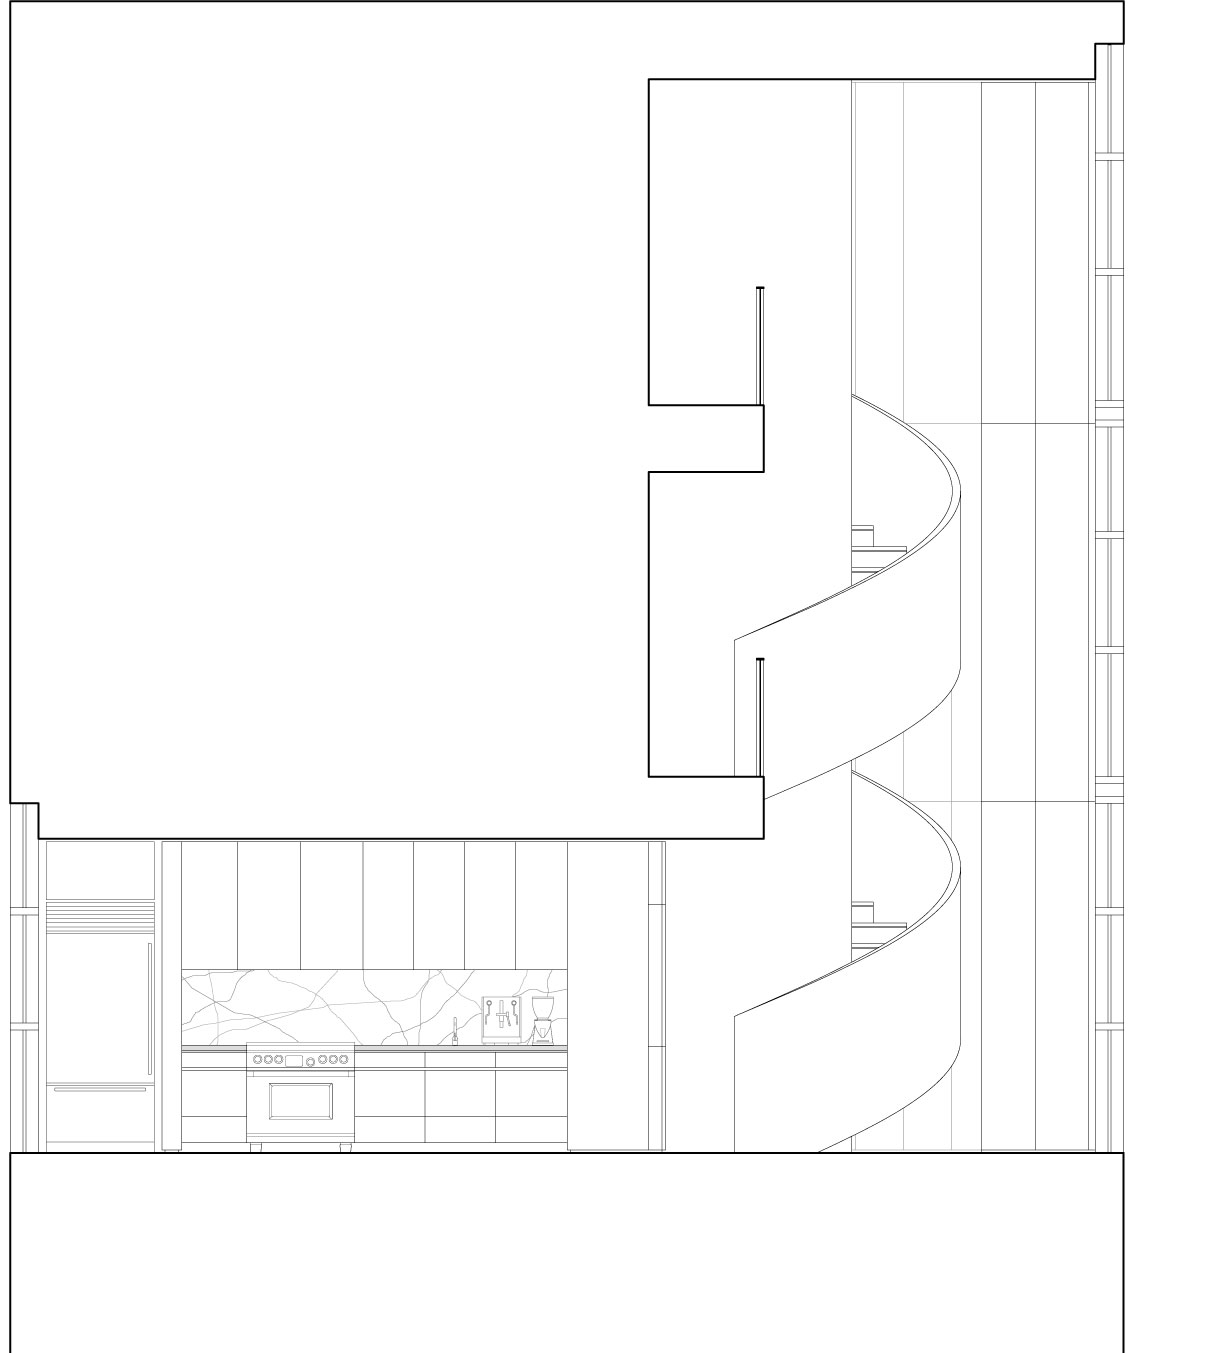 A section drawing shows the void space with corkscrew stair.